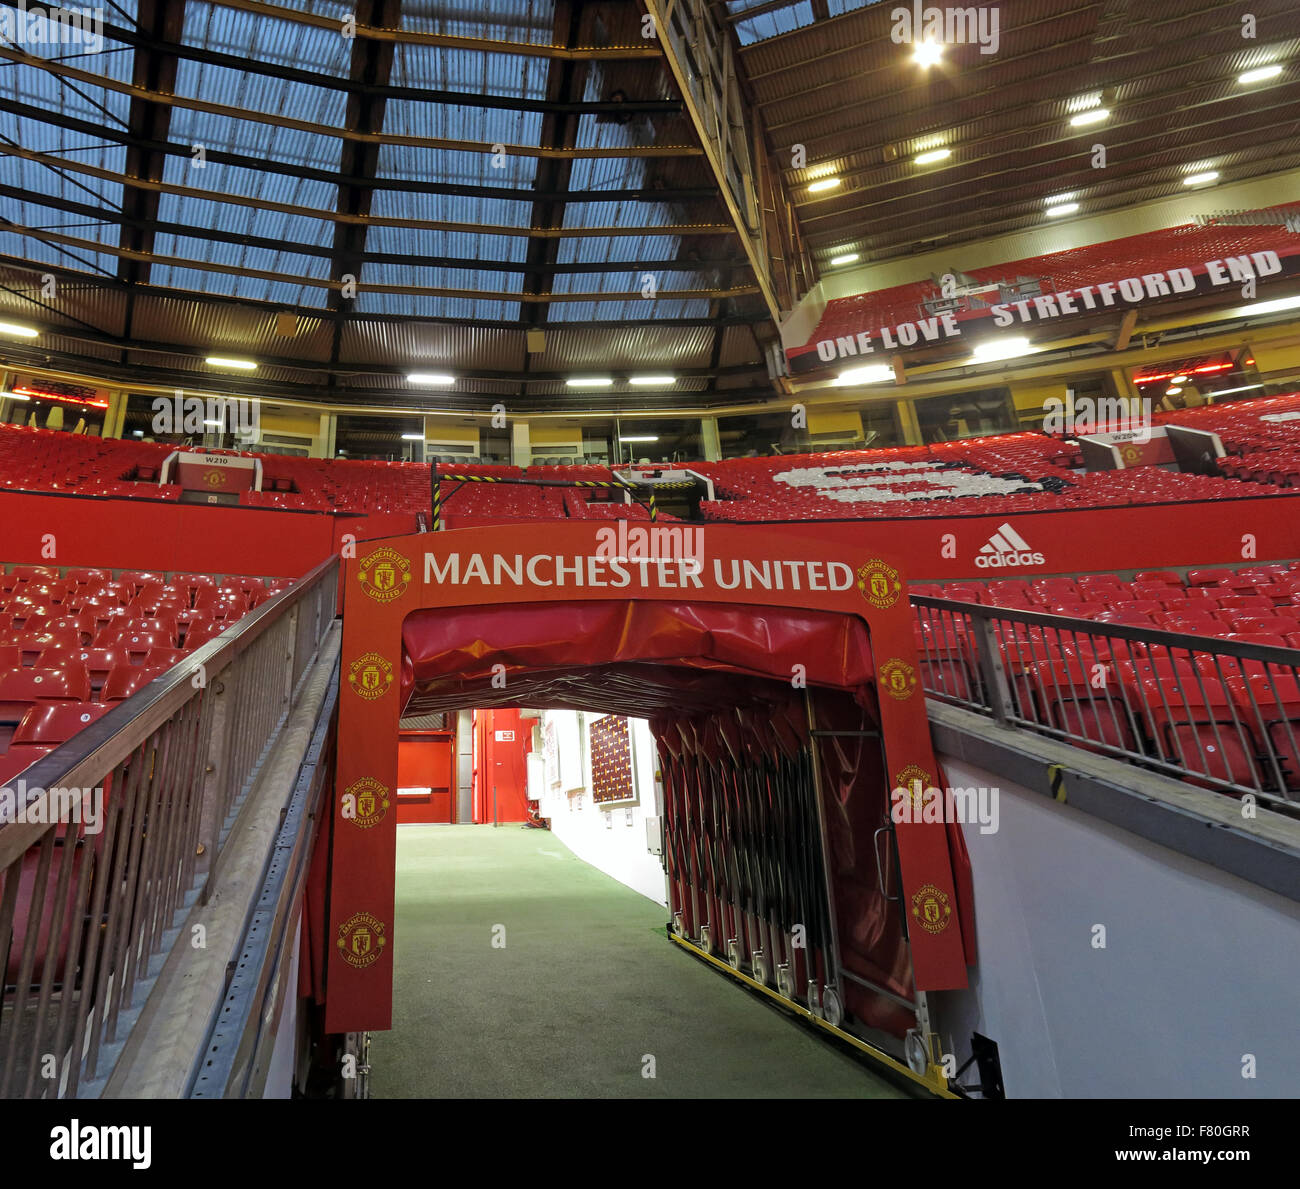 MUFC,Stretford,End,arena,british,england,english,eu,europe european,football,football club,football pitch,football stadium,gb,great britain,ground,manchester,manchester united,manchester united football club,north west england,old trafford,pitch,Players Tunnel,Stretford End,GoTonySmith,ManchesterUnited,MUFC,Mancester,MU,old,Trafford,theatre,of,dreams,Lancs,Lancashire,RedDevils,Red,Devils,Football,Club,FC,allseater,all-seater,association,away,balls,betting,britain,british,champions,changing,coaches,competition,culture,cups,division,documentary,dressing,england,english,fans,fixtures,game,goals,ground,heritage,history,home,homesoffootball,hooliganism,justice,kick,kick-off,league,managers,midweek,pitch,players,police,premier,promotion,referees,regulations,relegation,results,room,roots,rules,saturday,saturdays,scorers,season,seated,seater,seating,shinpads,shirt,shirts,sizes,sky,skysports,soccer,social,socks,sponsors,sport,stadia,stadium,standing,sundays,sunday,system,tables,team,terraces,tradition,trainers,Adidas,Puma,Buy Pictures of,Buy Images Of,Old Trafford,Theatre of Dreams,Theater of dreams,Red Devils